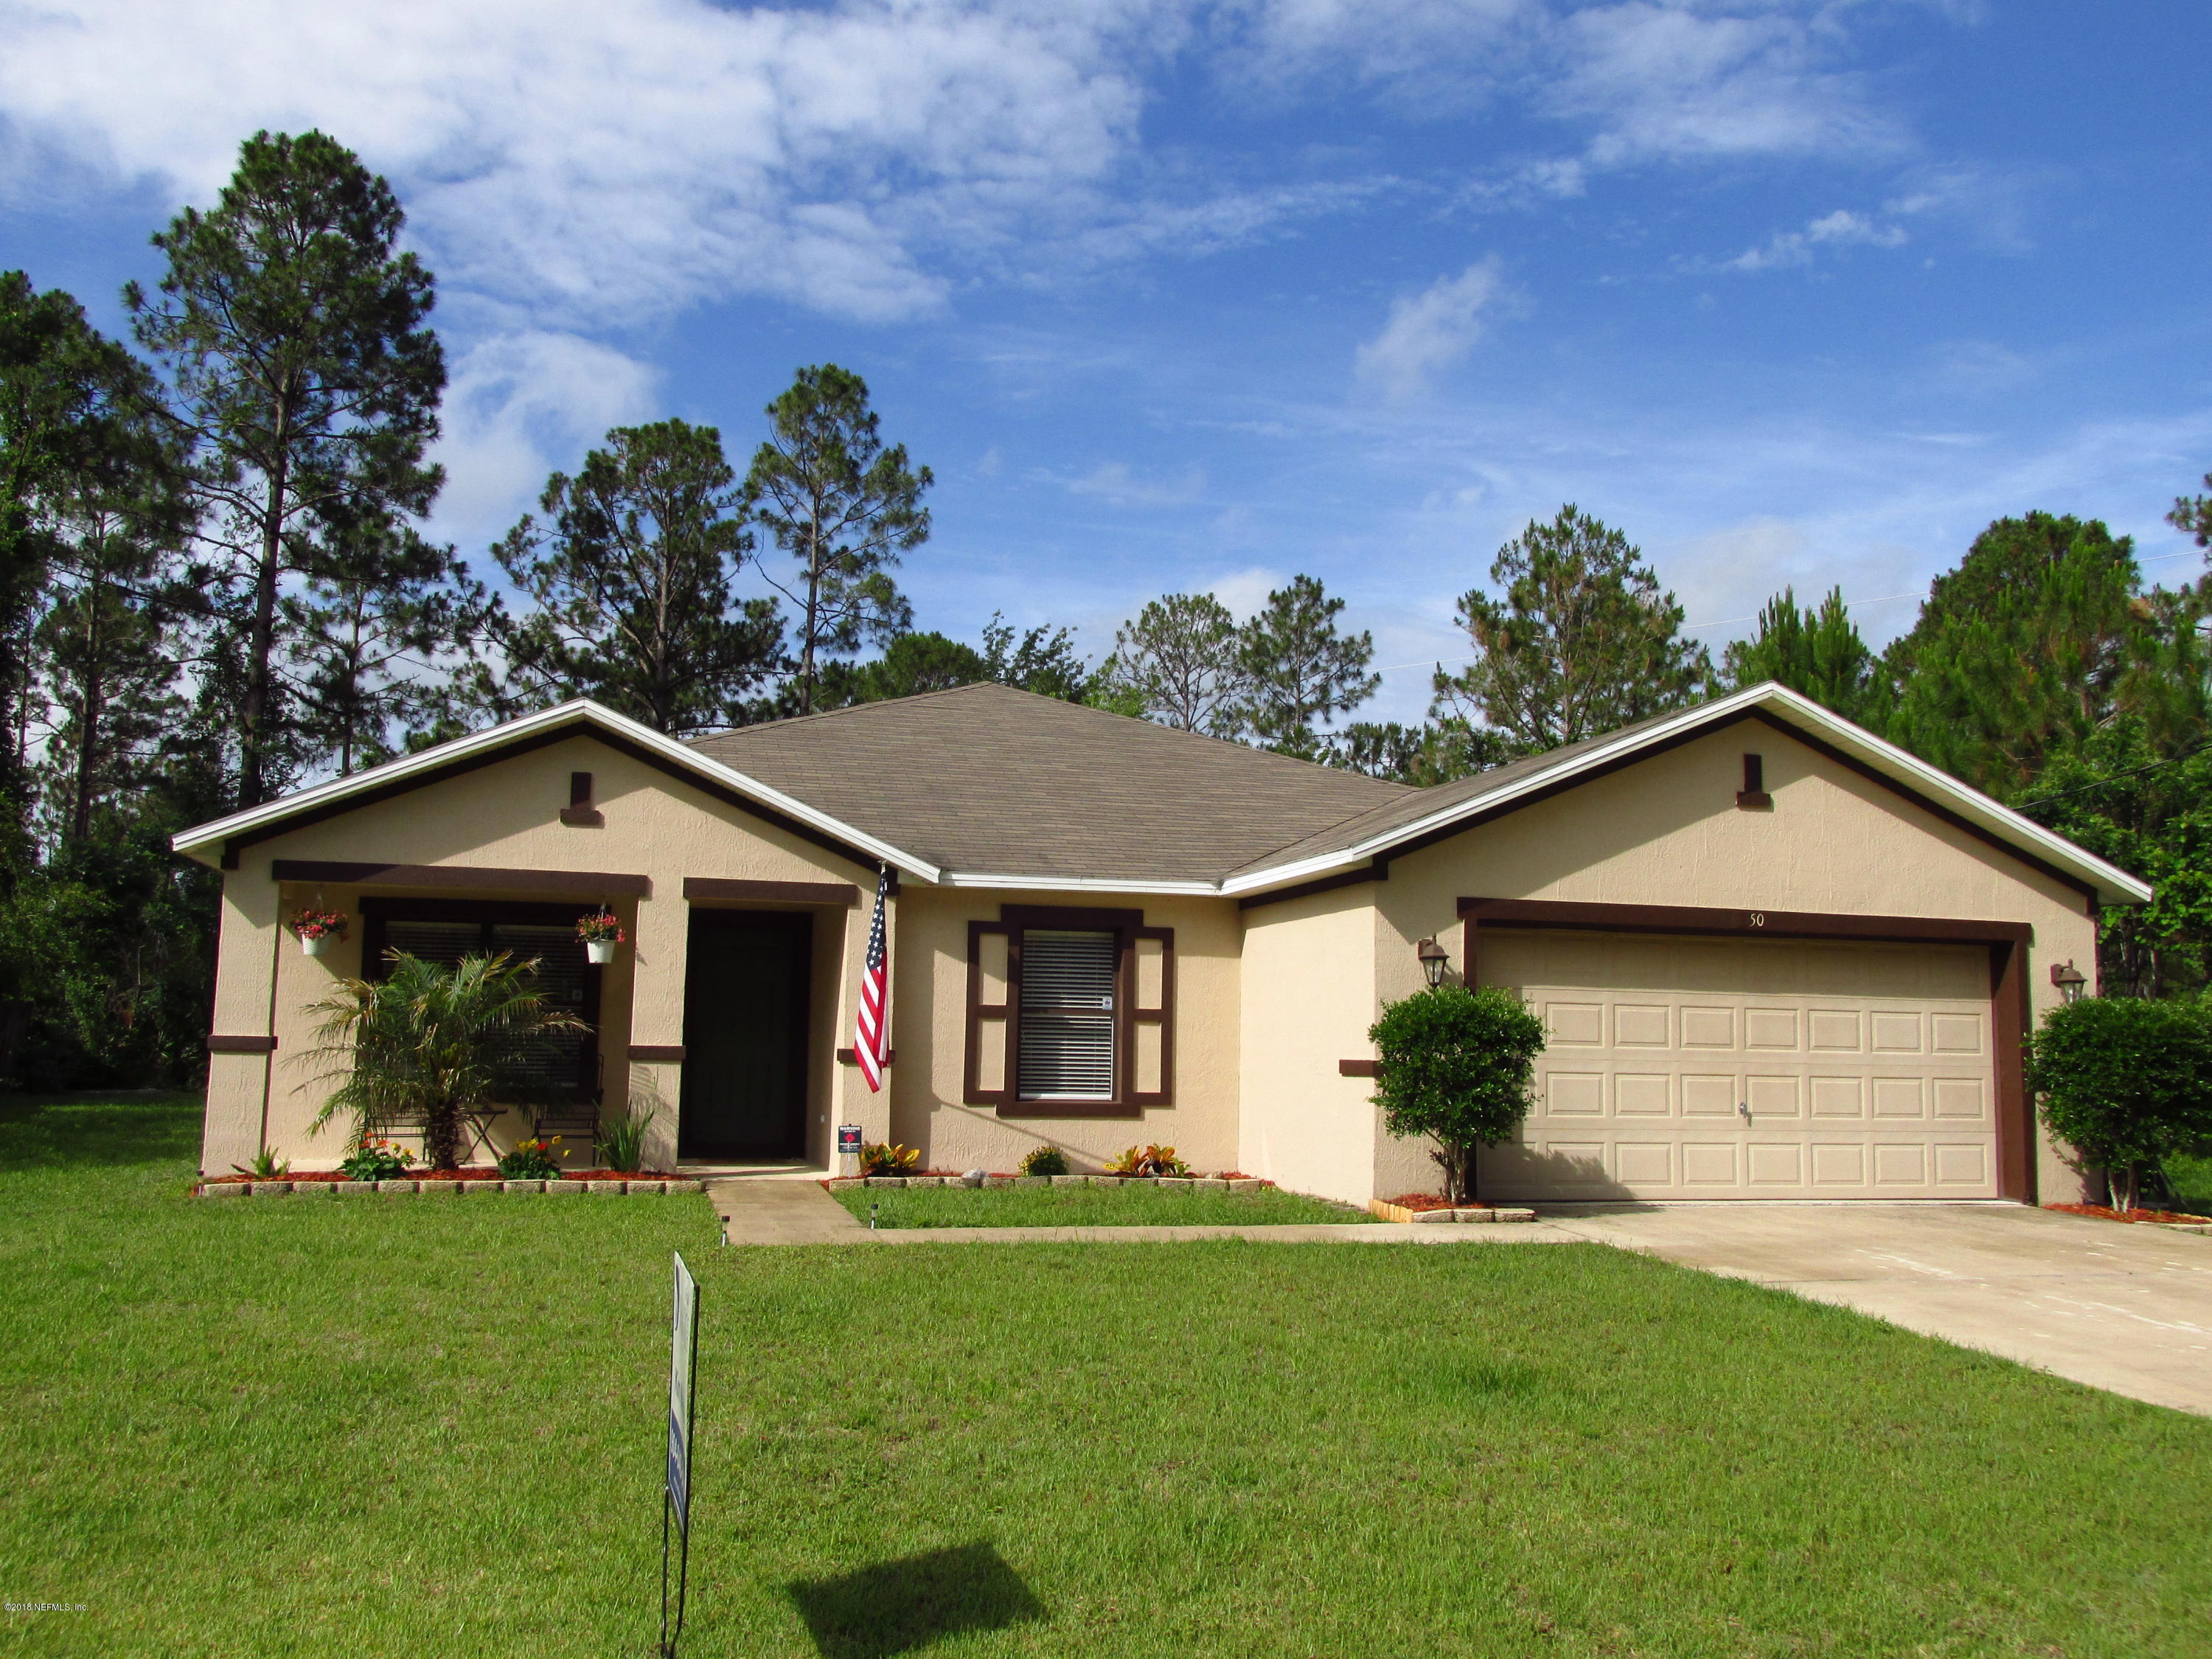 50 SECRETARY, PALM COAST, FLORIDA 32164, 3 Bedrooms Bedrooms, ,2 BathroomsBathrooms,Residential - single family,For sale,SECRETARY,886269